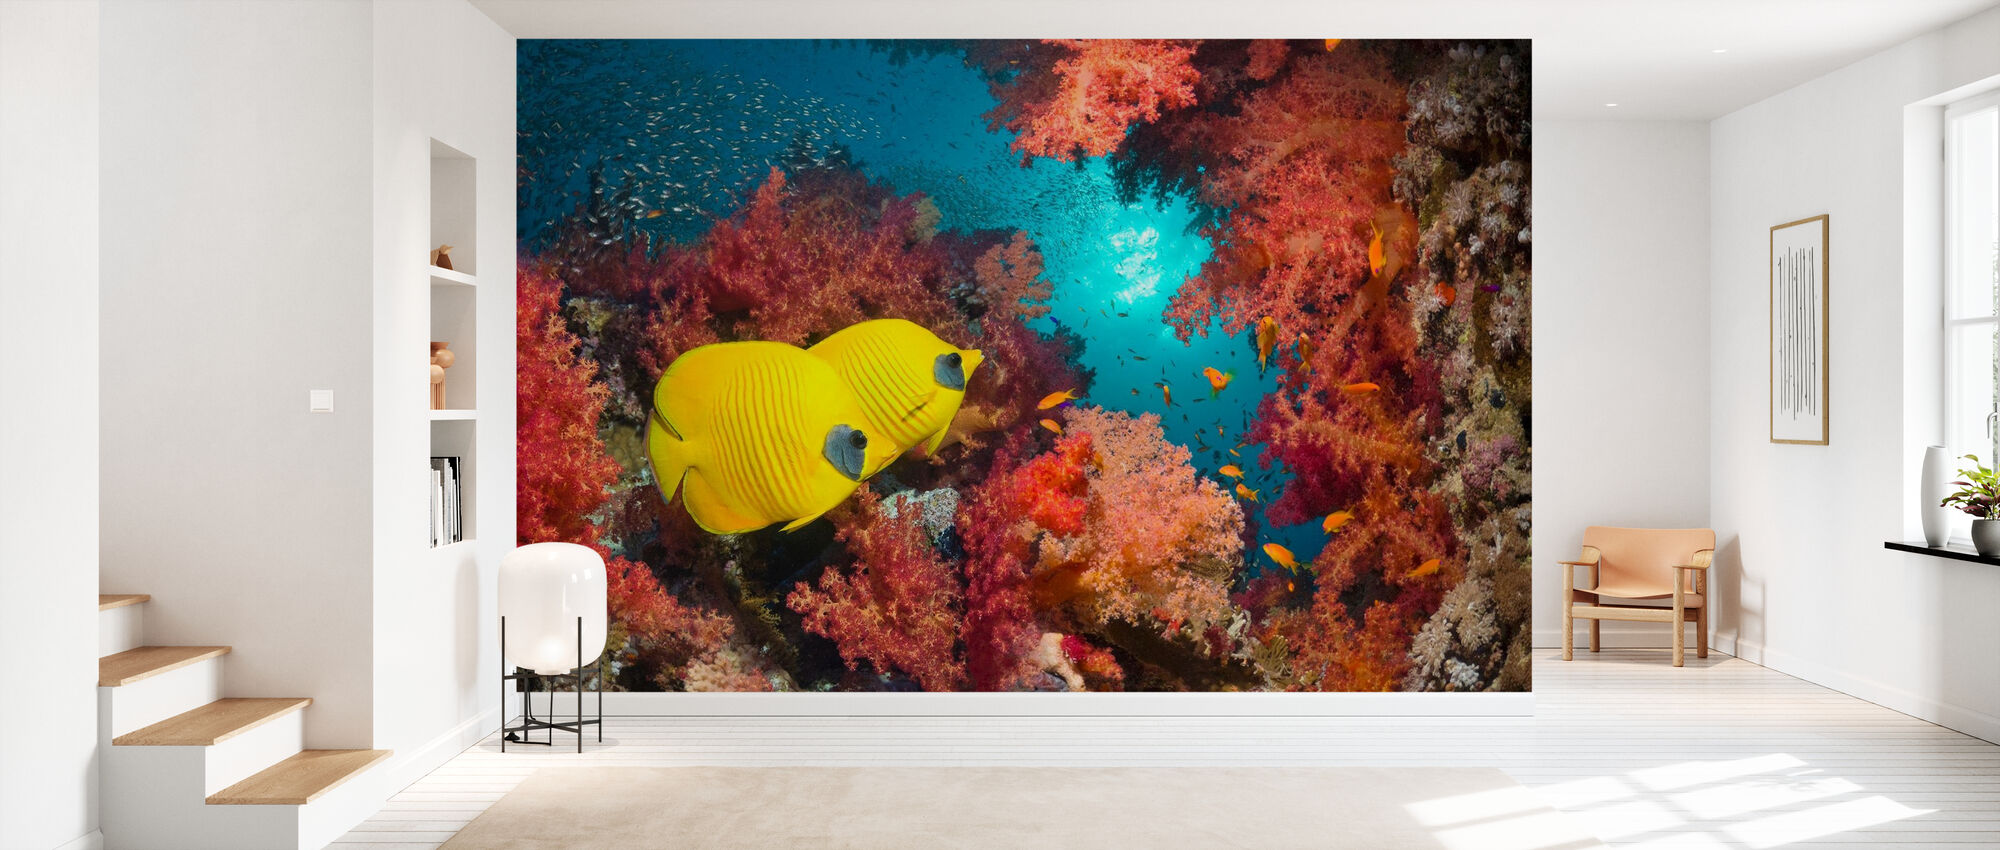 Butterfly Fish And Red Corals High Quality Wall Murals With Free Us Delivery Photowall